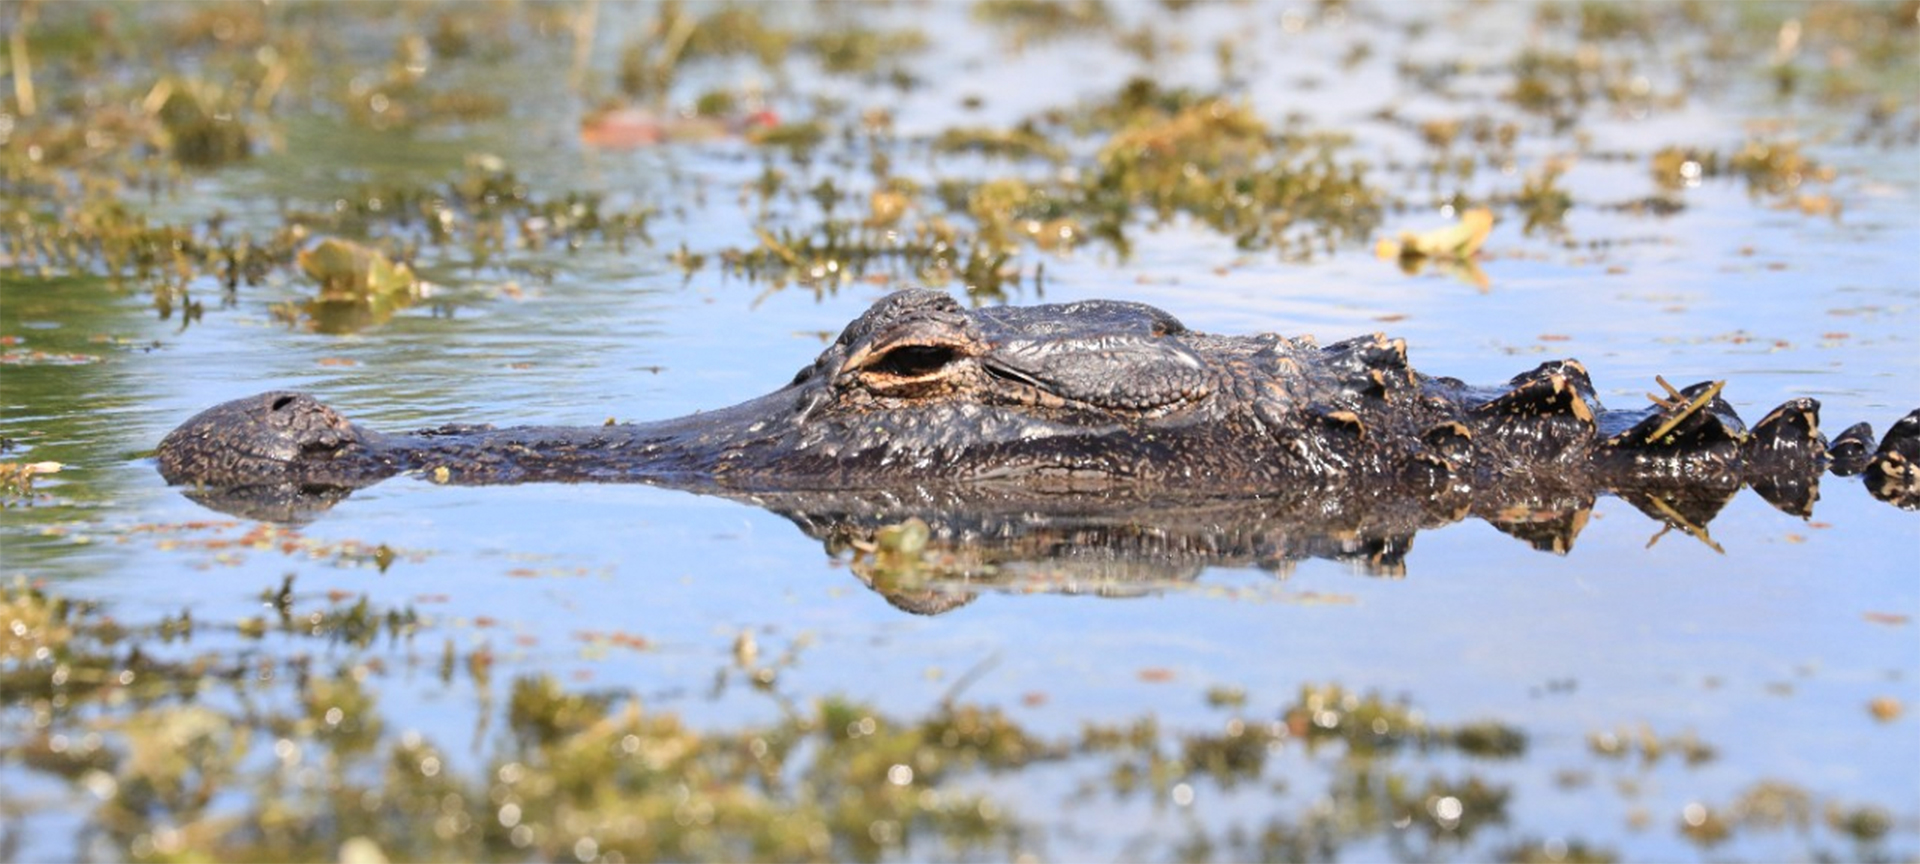 The American alligator (Alligator mississippiensis), sometimes referred to colloquially as a gator or common alligator, is a large crocodilian reptile native to the Southeastern United States, inhabiting freshwater wetlands, such as marshes and cypress swamps. Adult male American alligators measure 3.4 to 4.6 metres in length, and can weigh up to 453 kg. Females are usually smaller, measuring 2.6 to 3 metres in length.